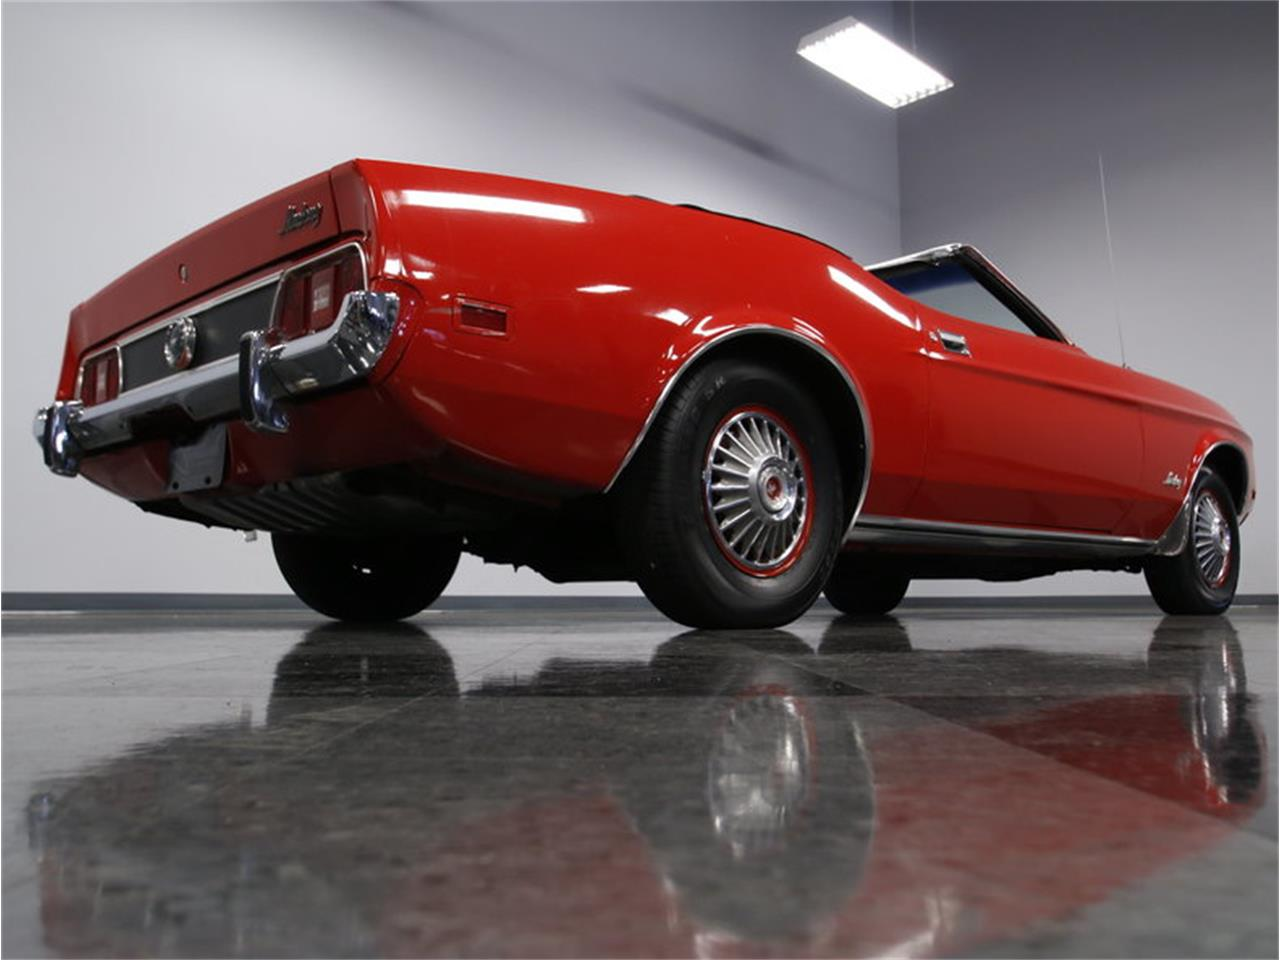 Large Picture of Classic '73 Mustang 351 Cobra Jet located in North Carolina Offered by Streetside Classics - Charlotte - KISW